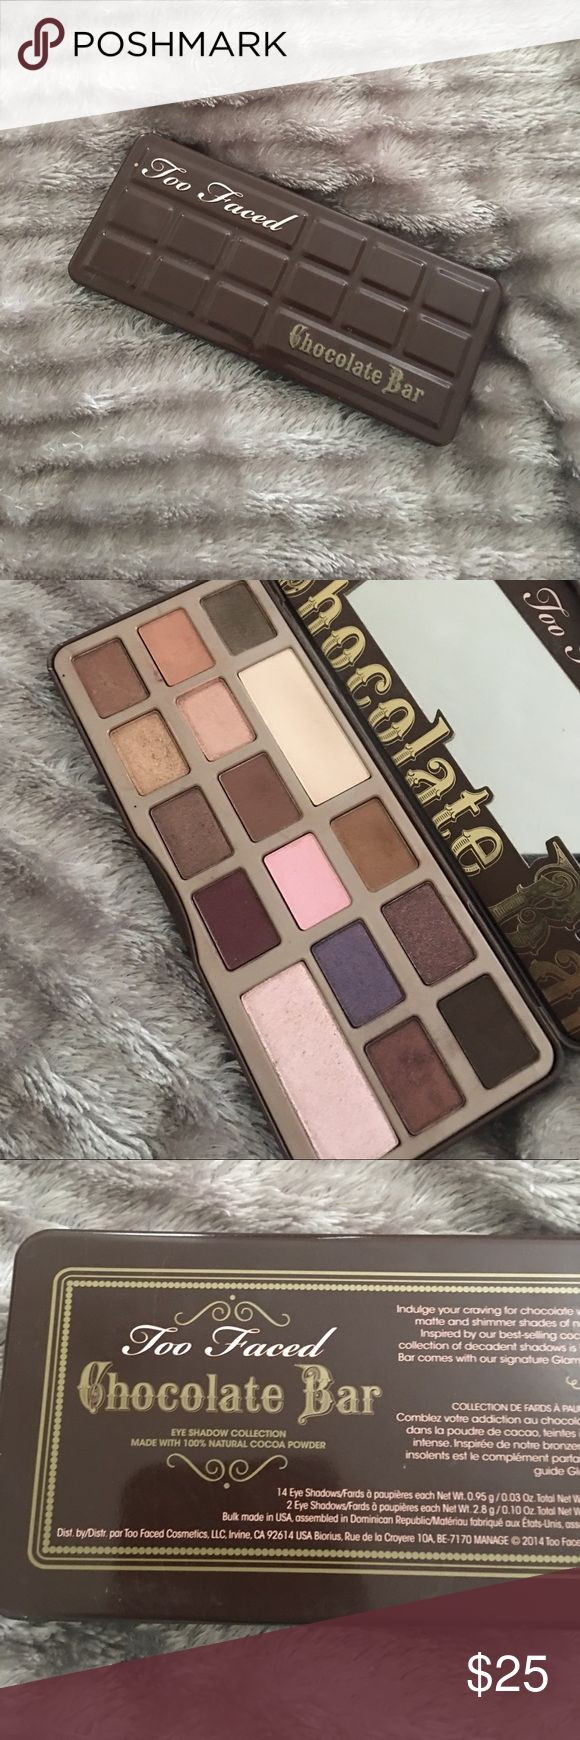 Too Faced Chocolate Bar Palette Used eyeshadow palette with lots of product still left, all colors still intact. This is the original palette when it first released in the slightly thicker pans. No trade! The most used colors are the cream beige and the medium brown shade (the 2nd shade in the large pan in the first row (cream) and the shade right after it (brown)) Too Faced Makeup Eyeshadow